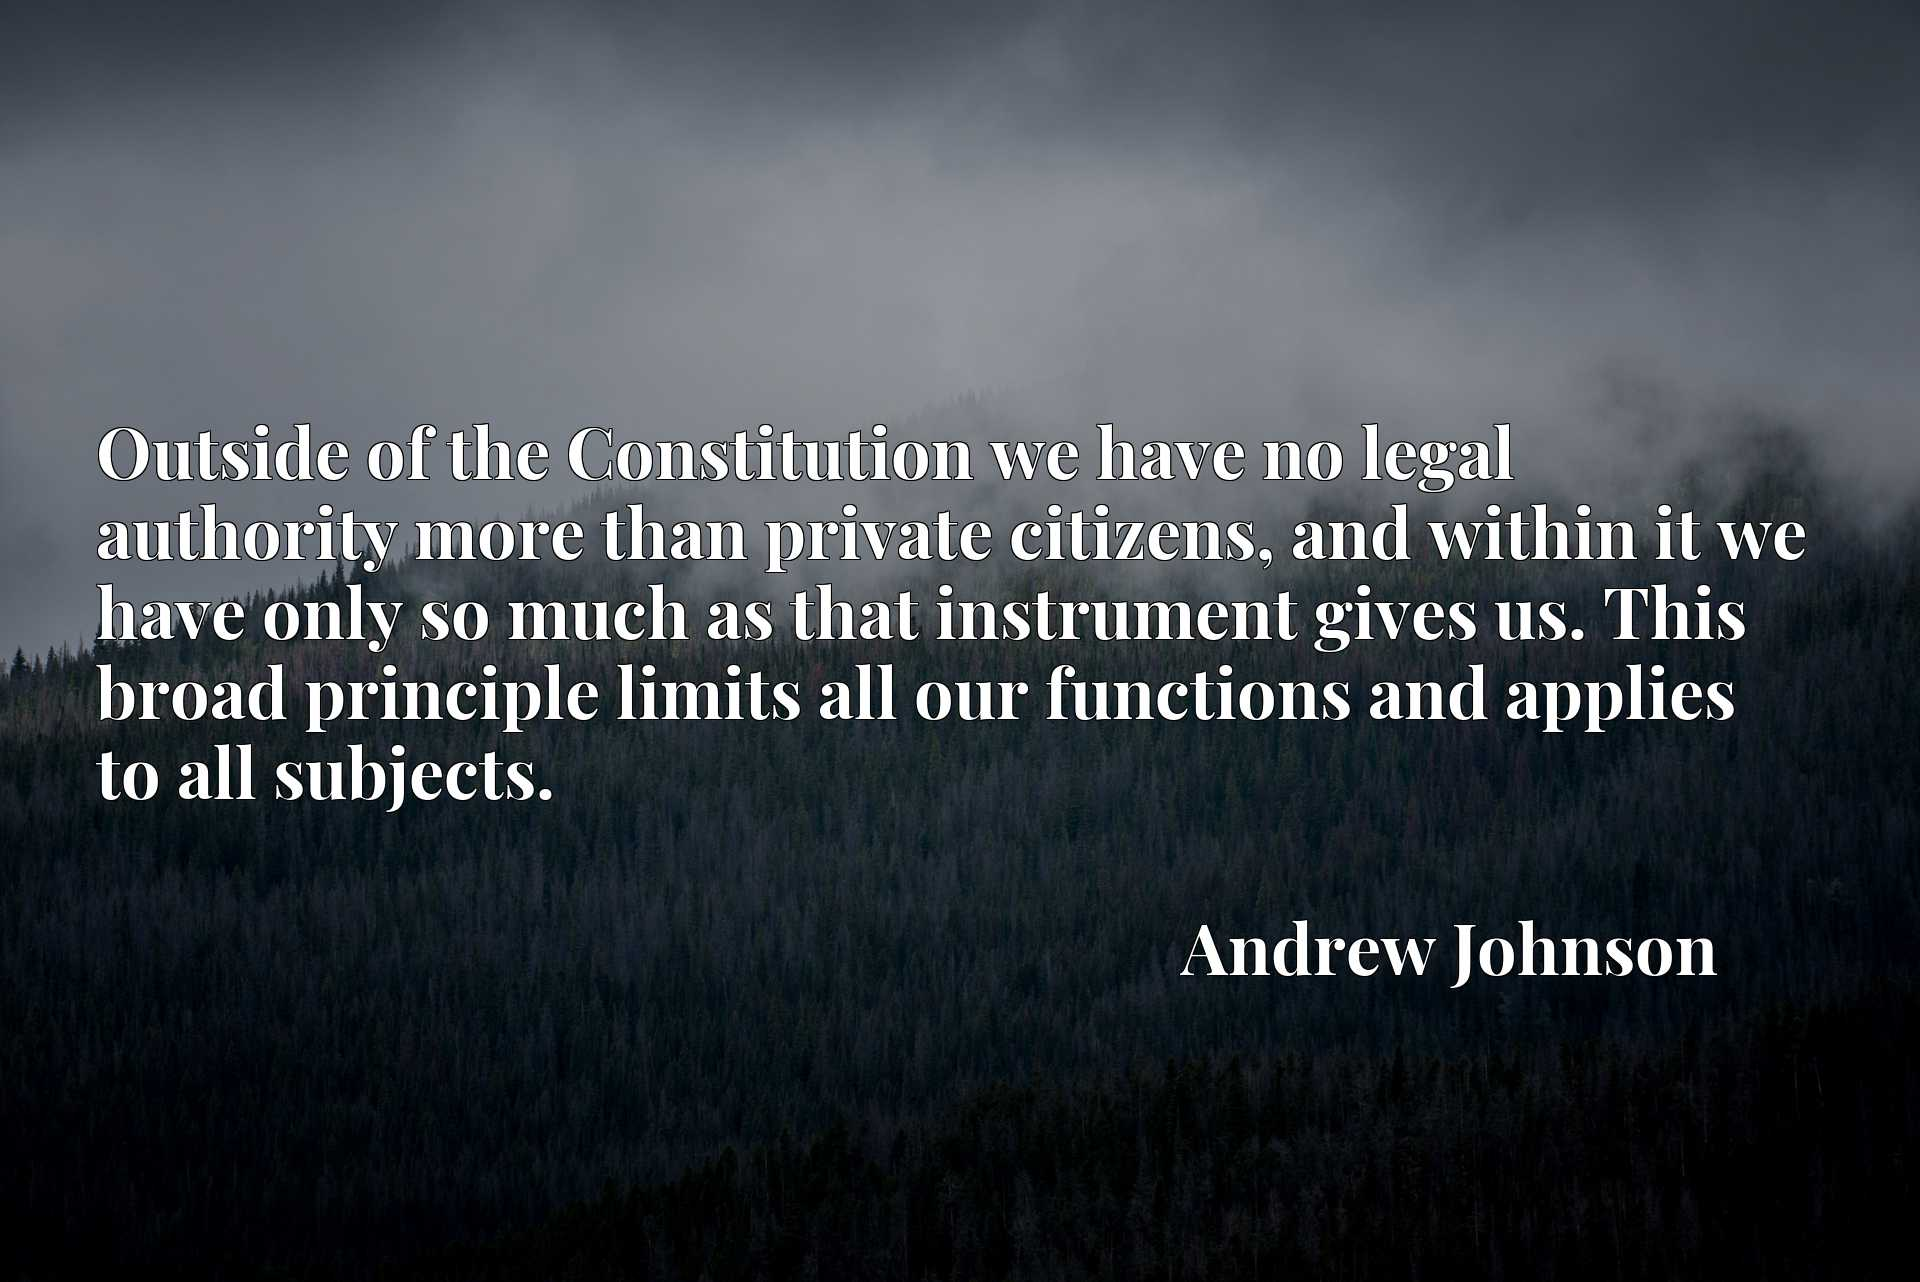 Quote Picture :Outside of the Constitution we have no legal authority more than private citizens, and within it we have only so much as that instrument gives us. This broad principle limits all our functions and applies to all subjects.